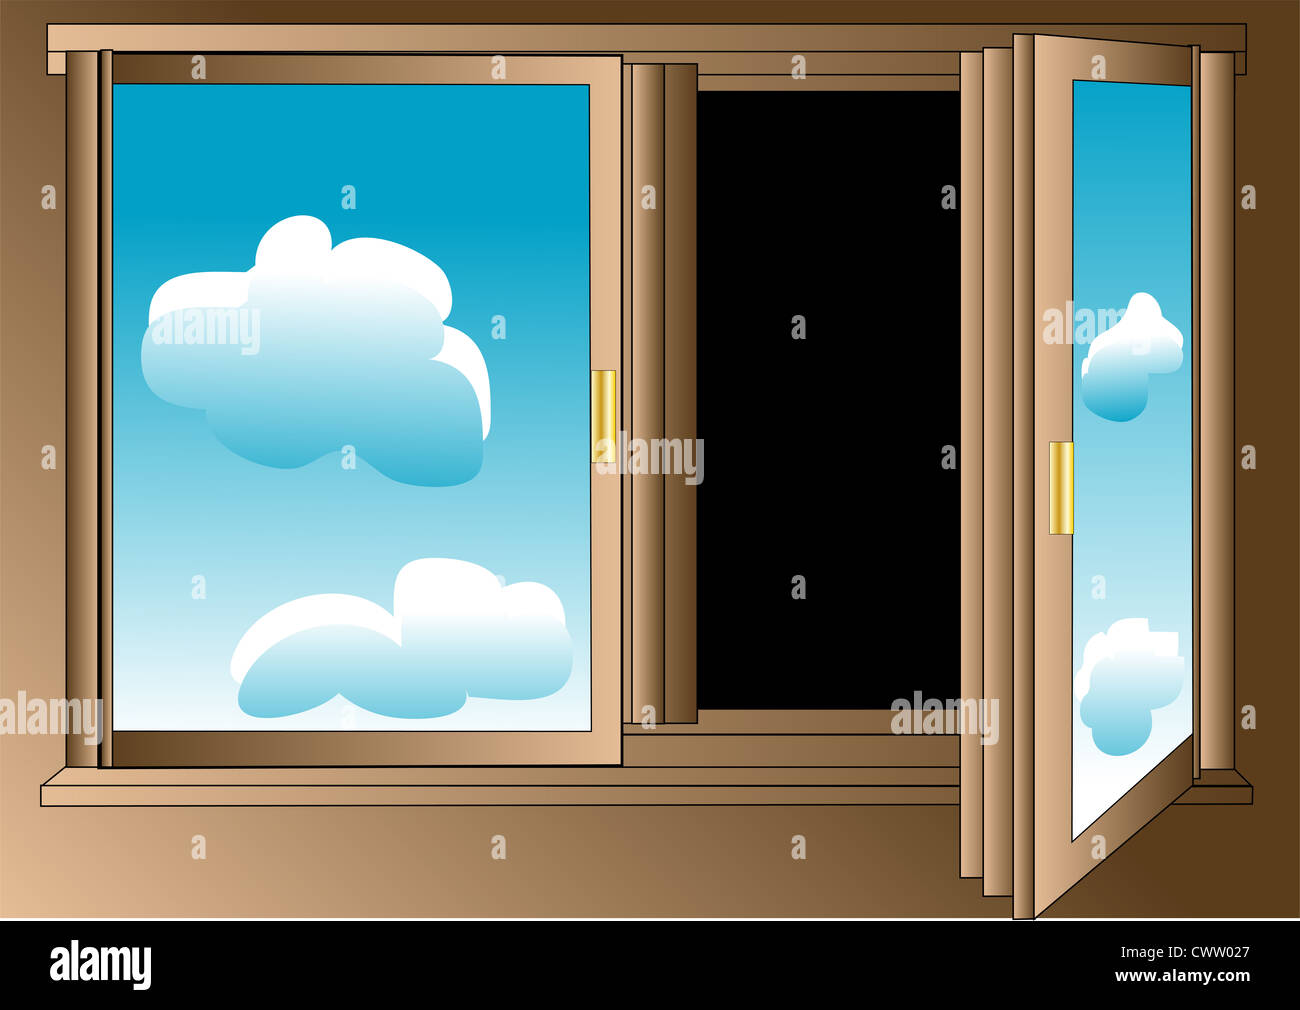 Pessimist's window with blue sky on the glass and darkness outside - Stock Image